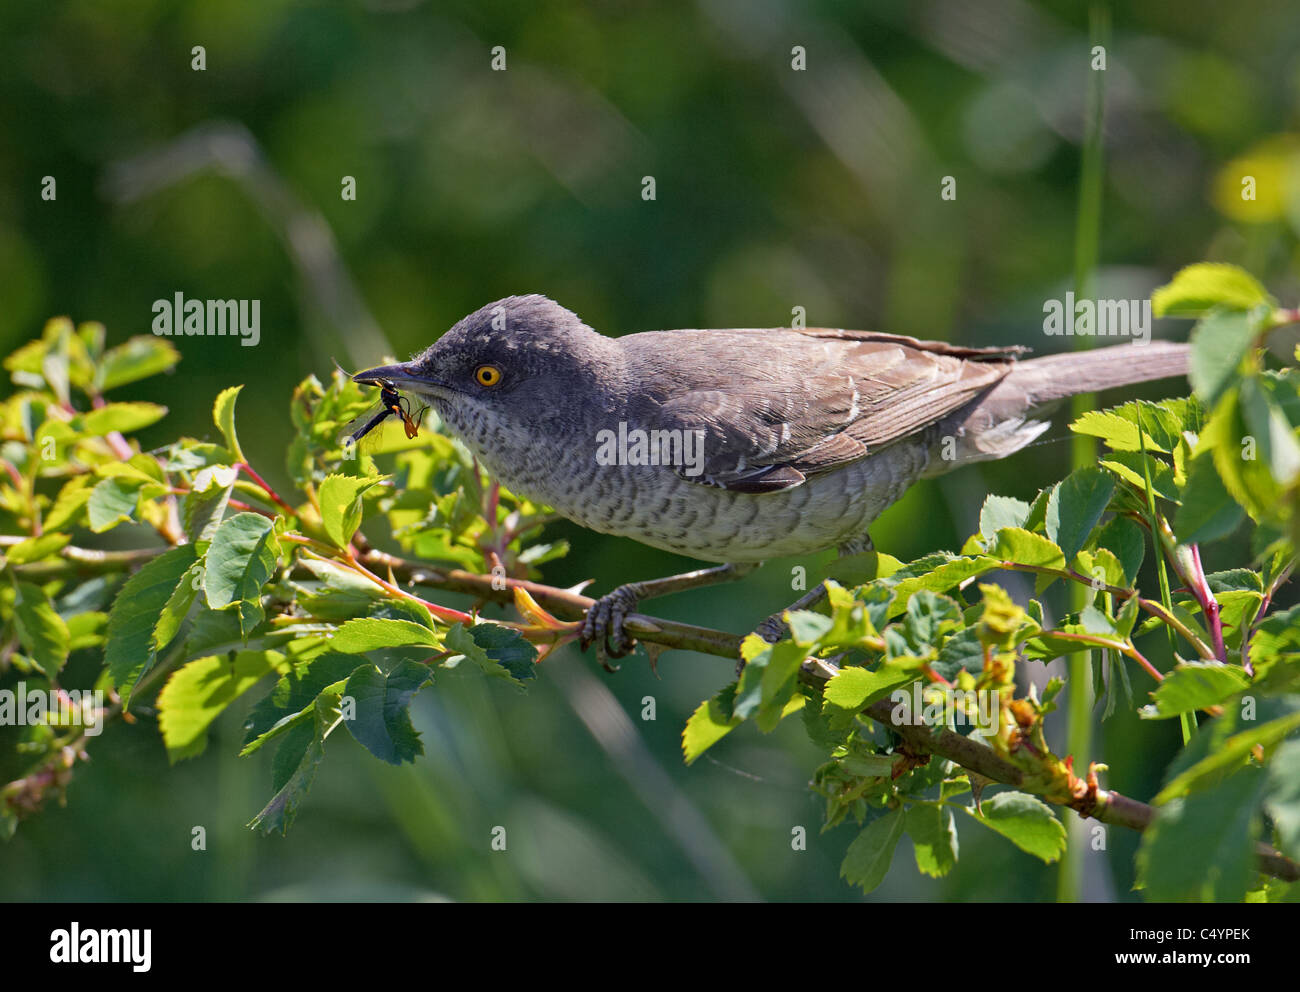 Barred warbler (Sylvia nisoria). Adult male perched on rose twig with an insect in its beak. - Stock Image